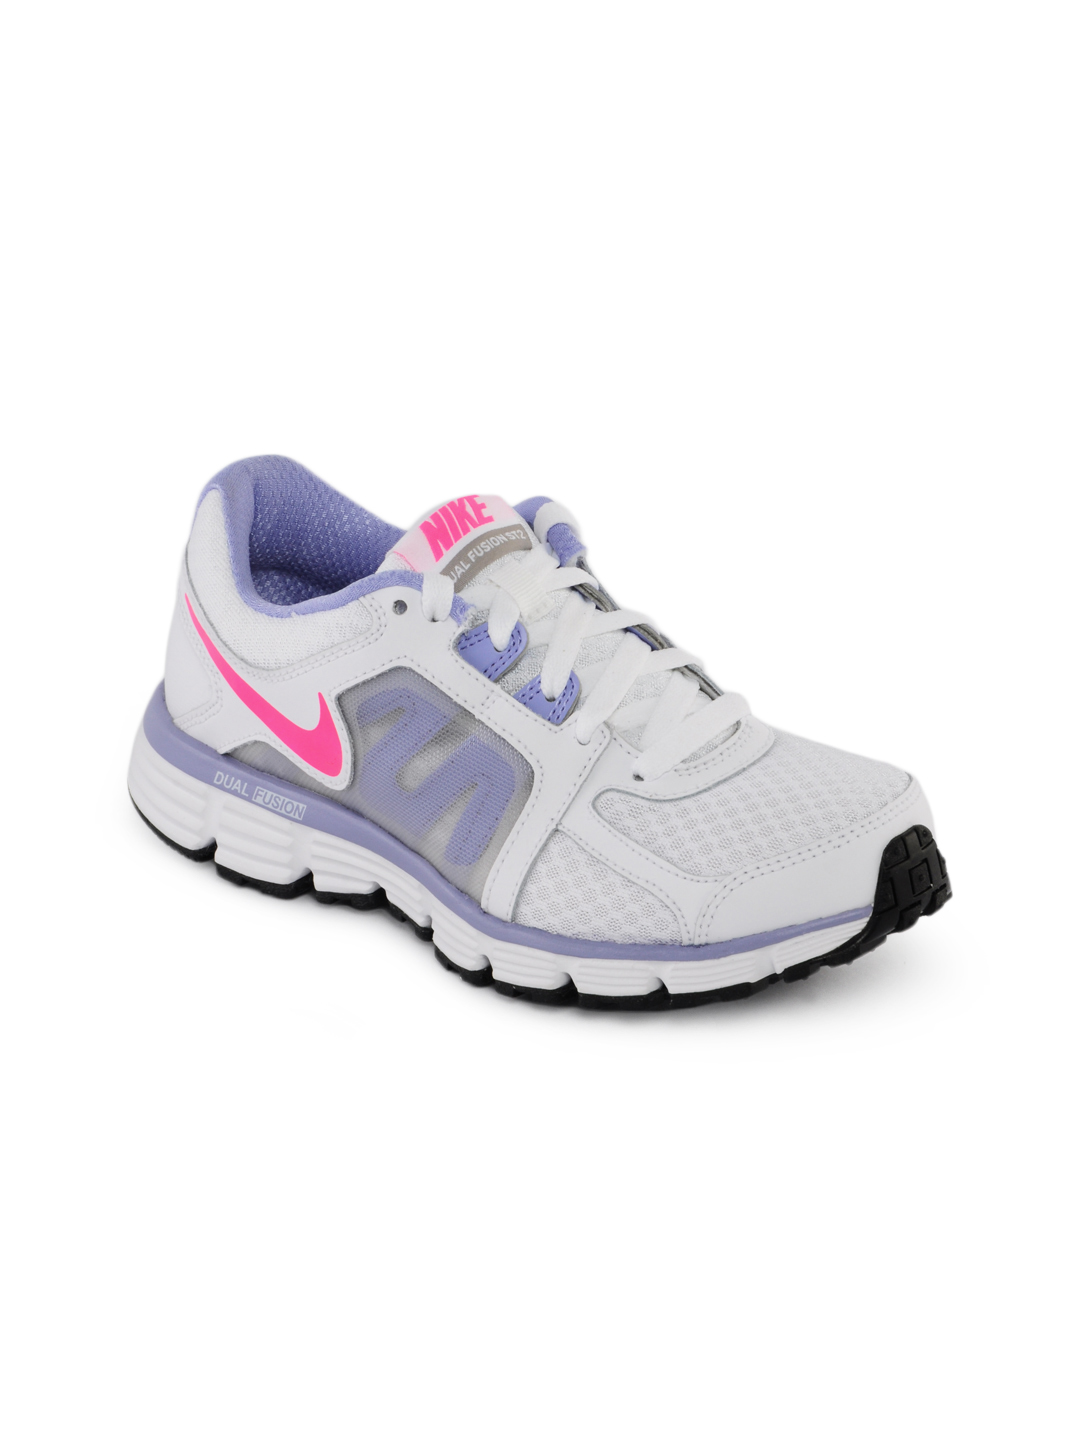 Nike Women Dual Fusion White Sports Shoes